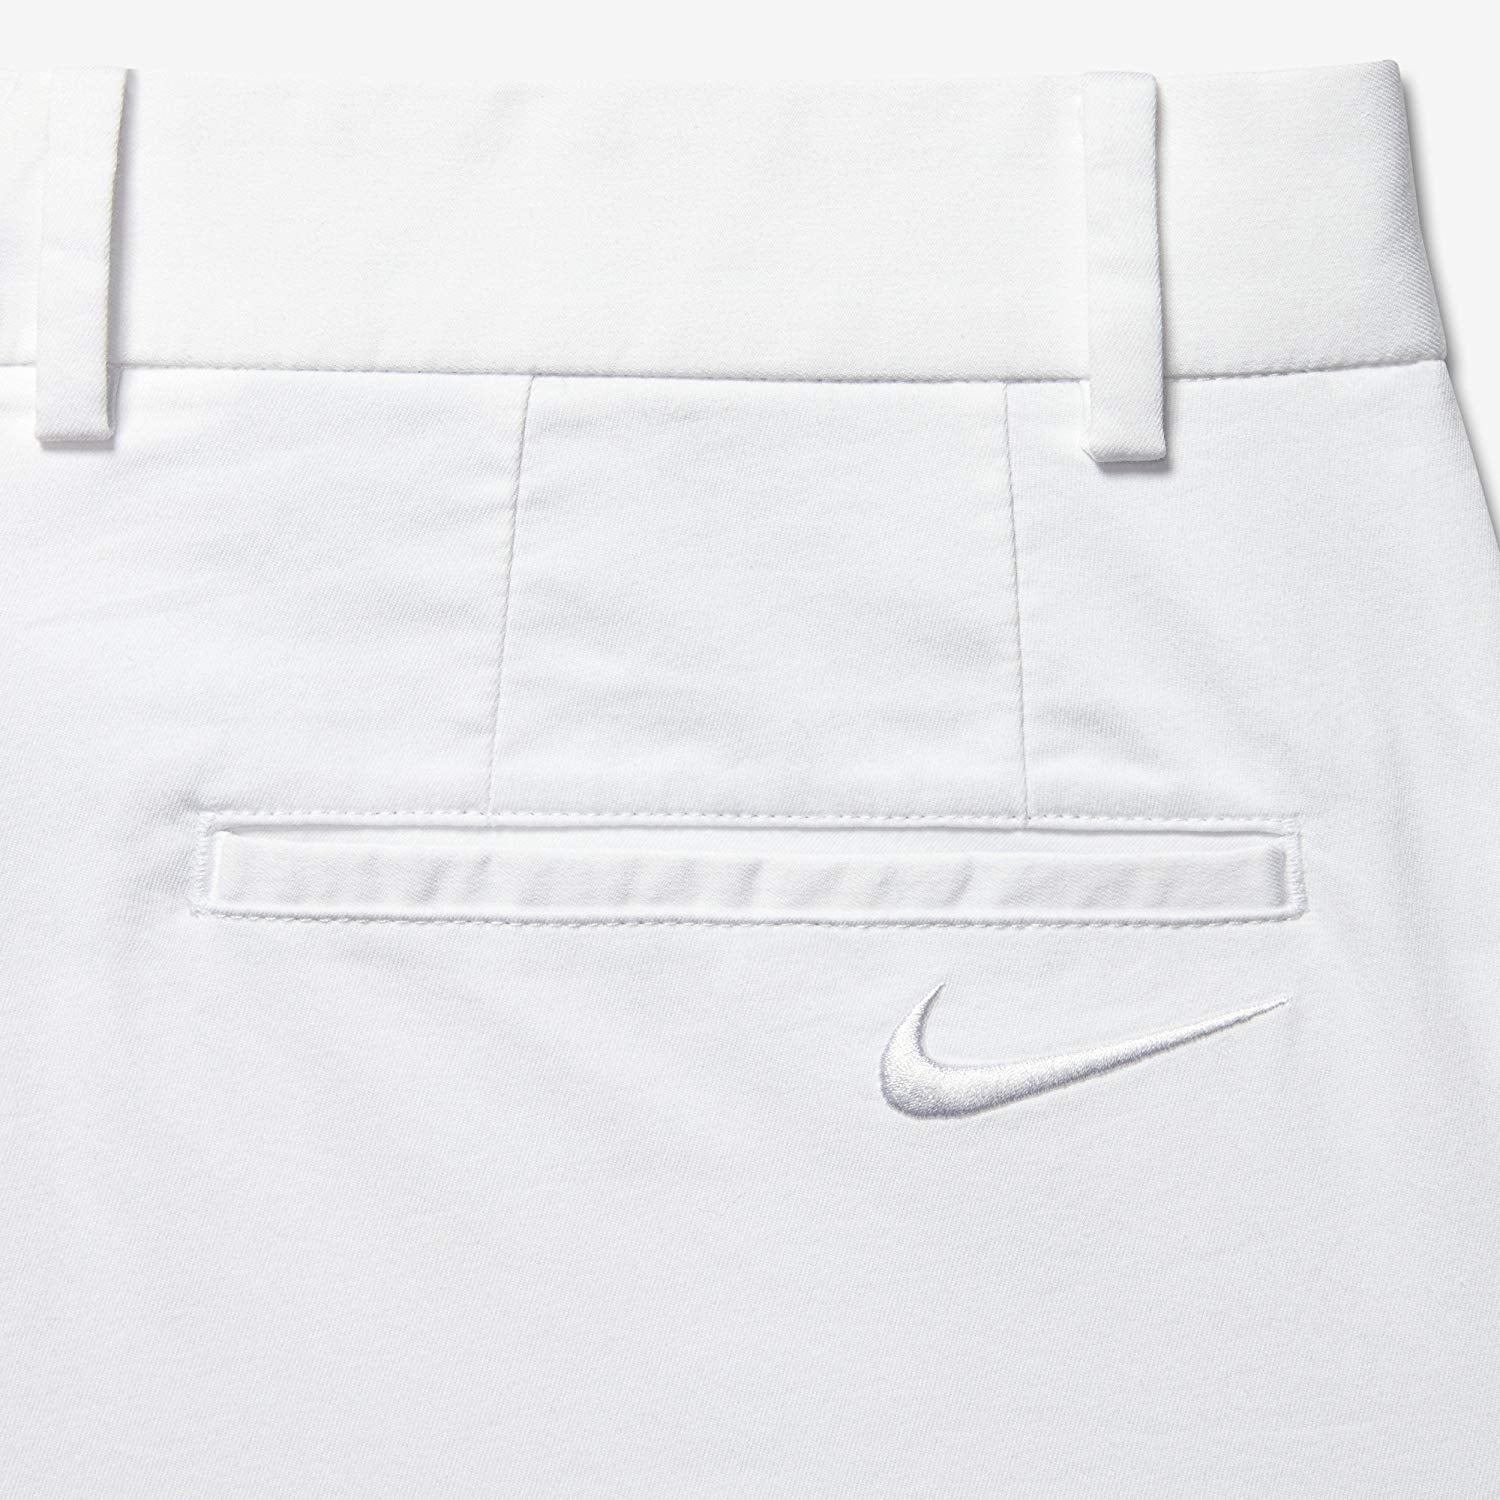 2017 Nike Modern Fit Washed Golf Pants White Size 34/34